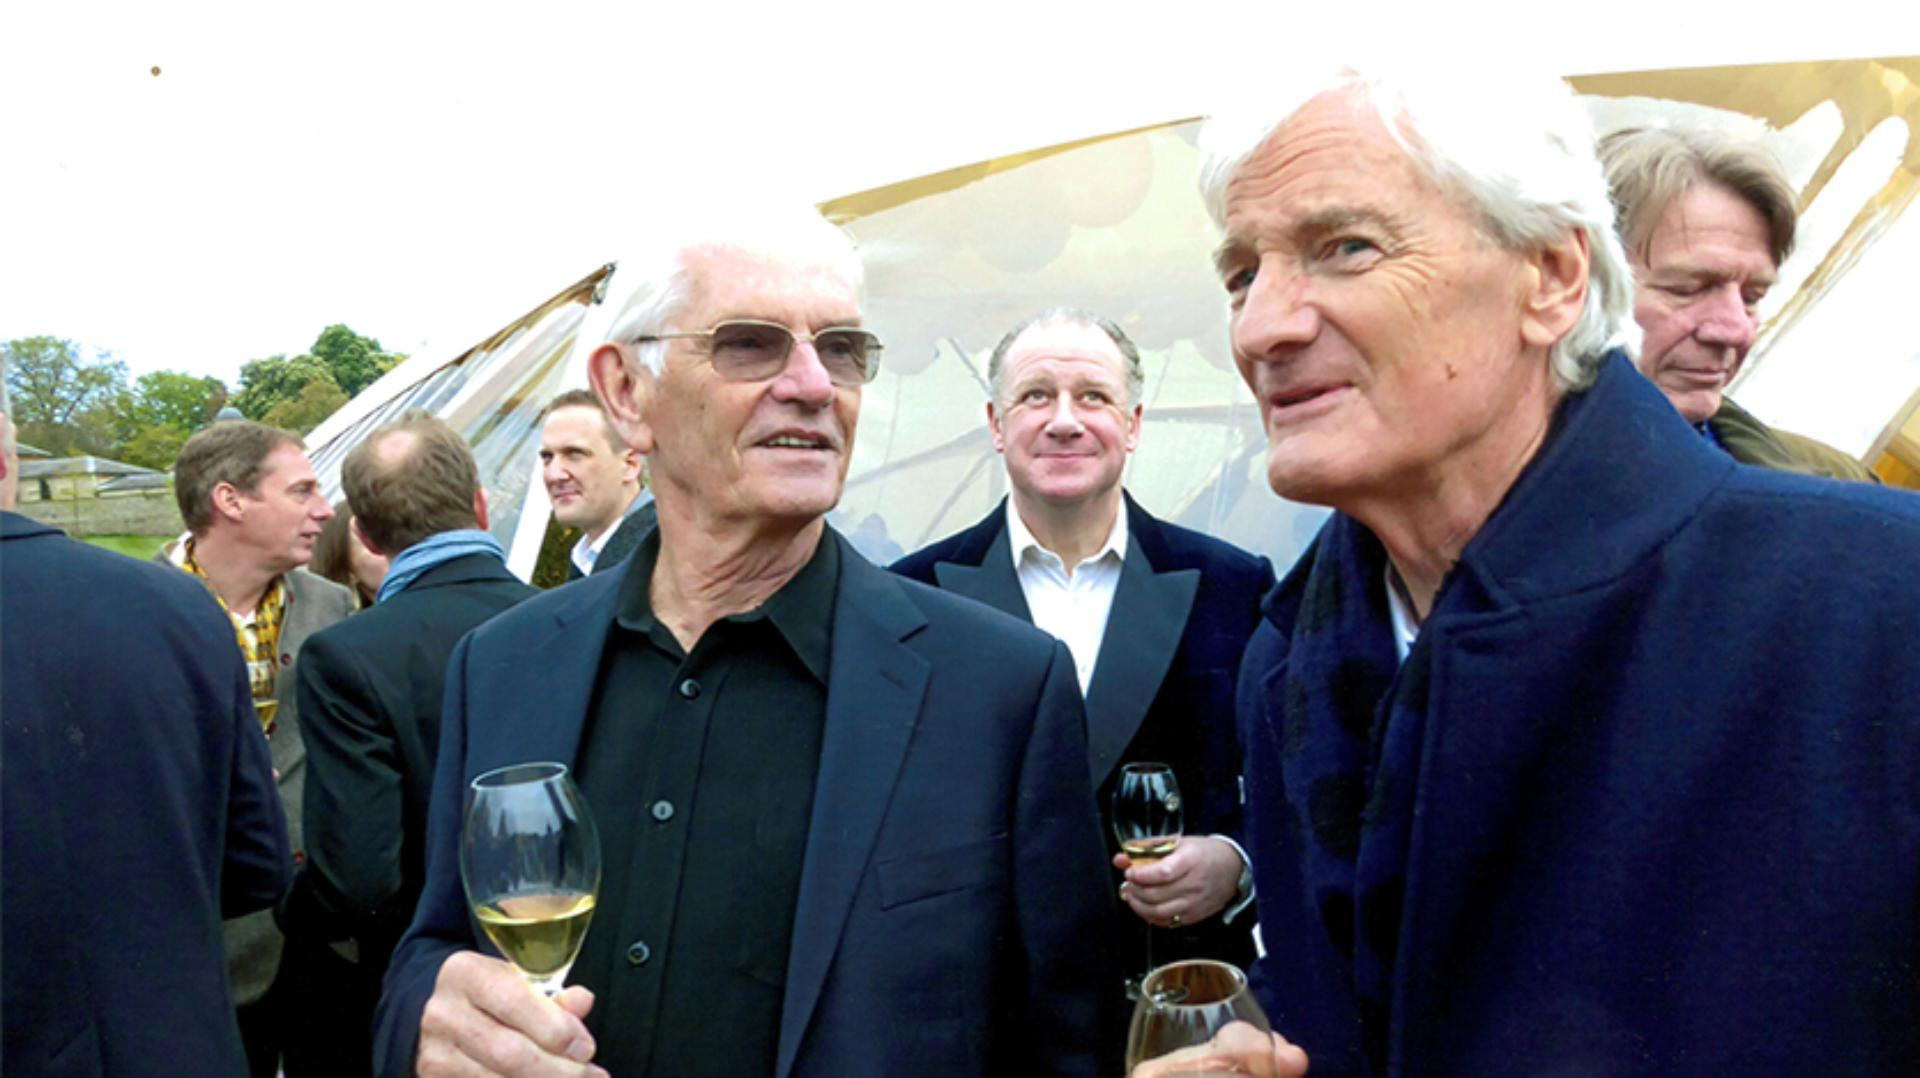 James Dyson with Ross Cameron